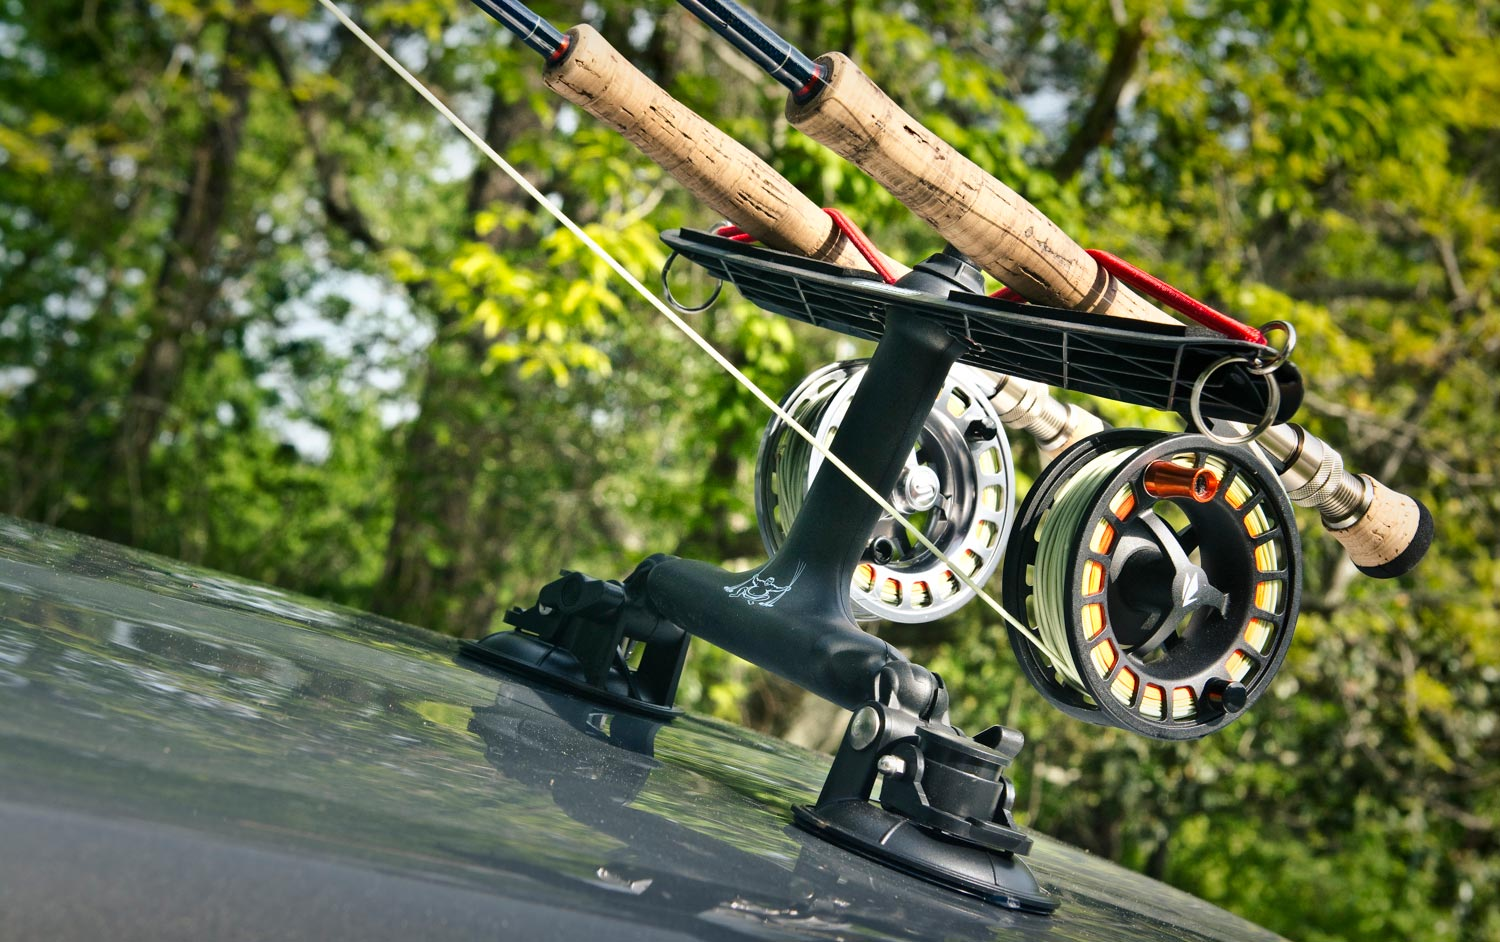 Vehicle rod carrier vehicle ideas for Fishing pole holder for car